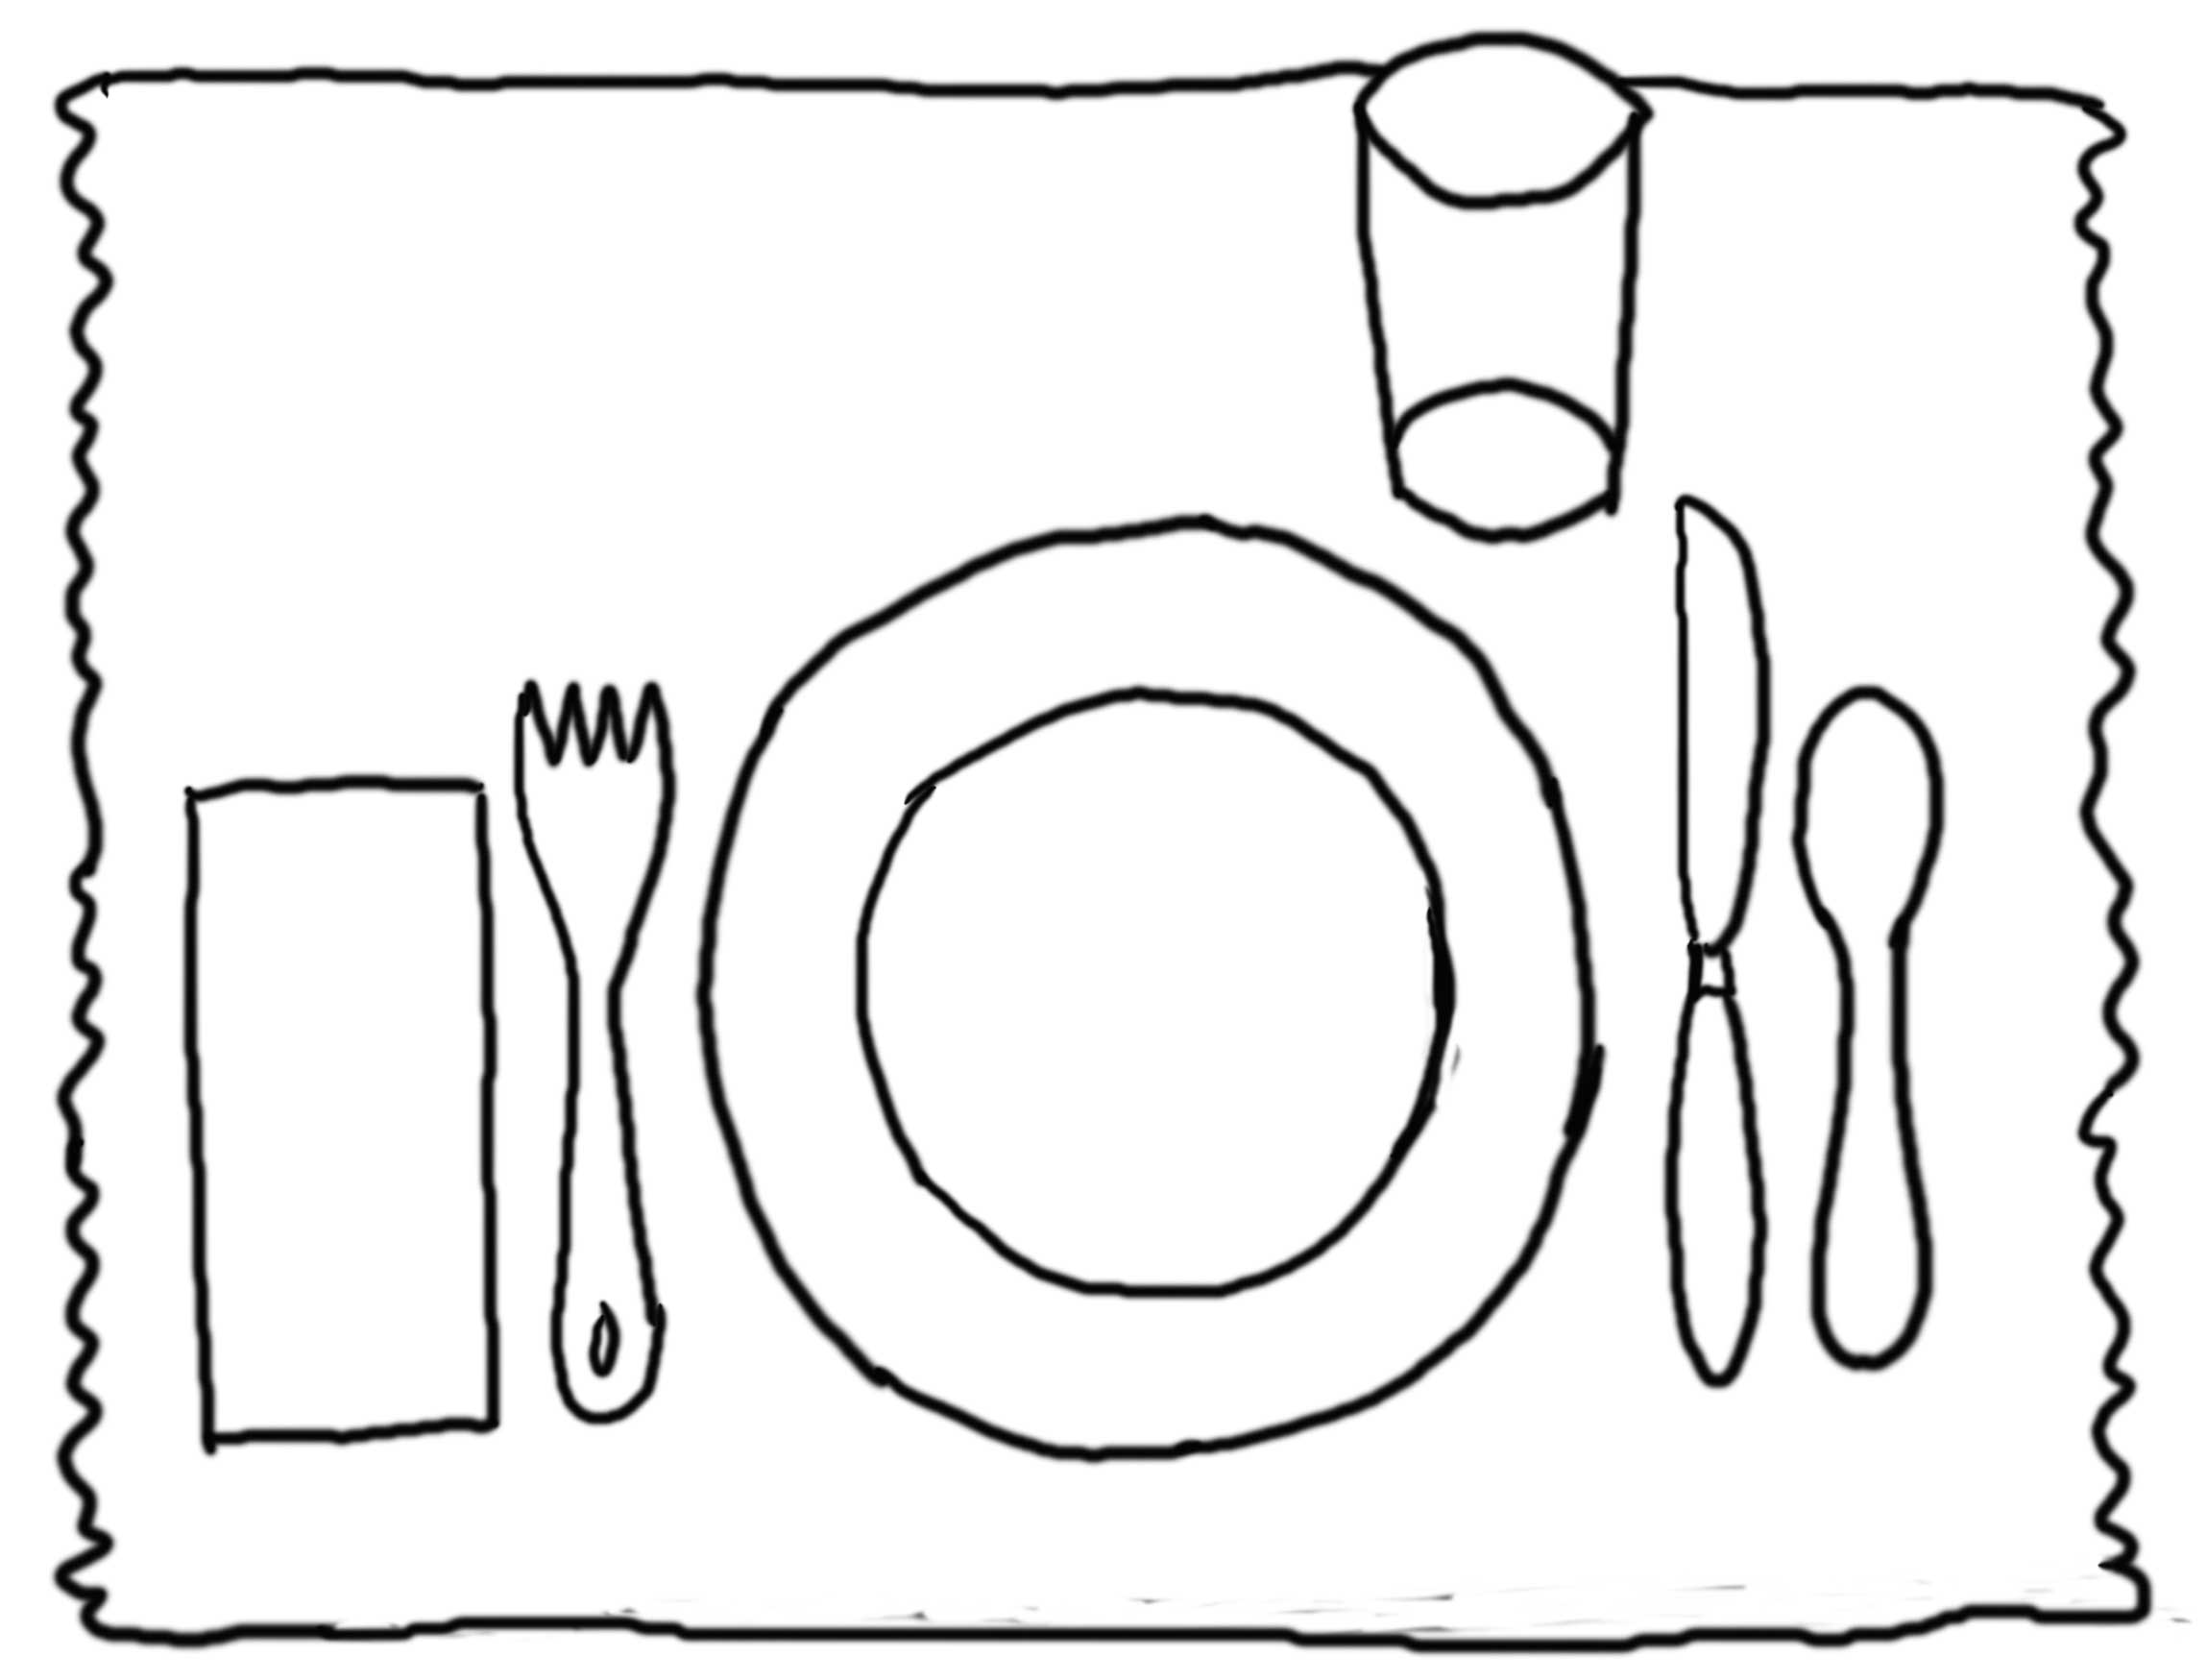 Placemat Coloring Page